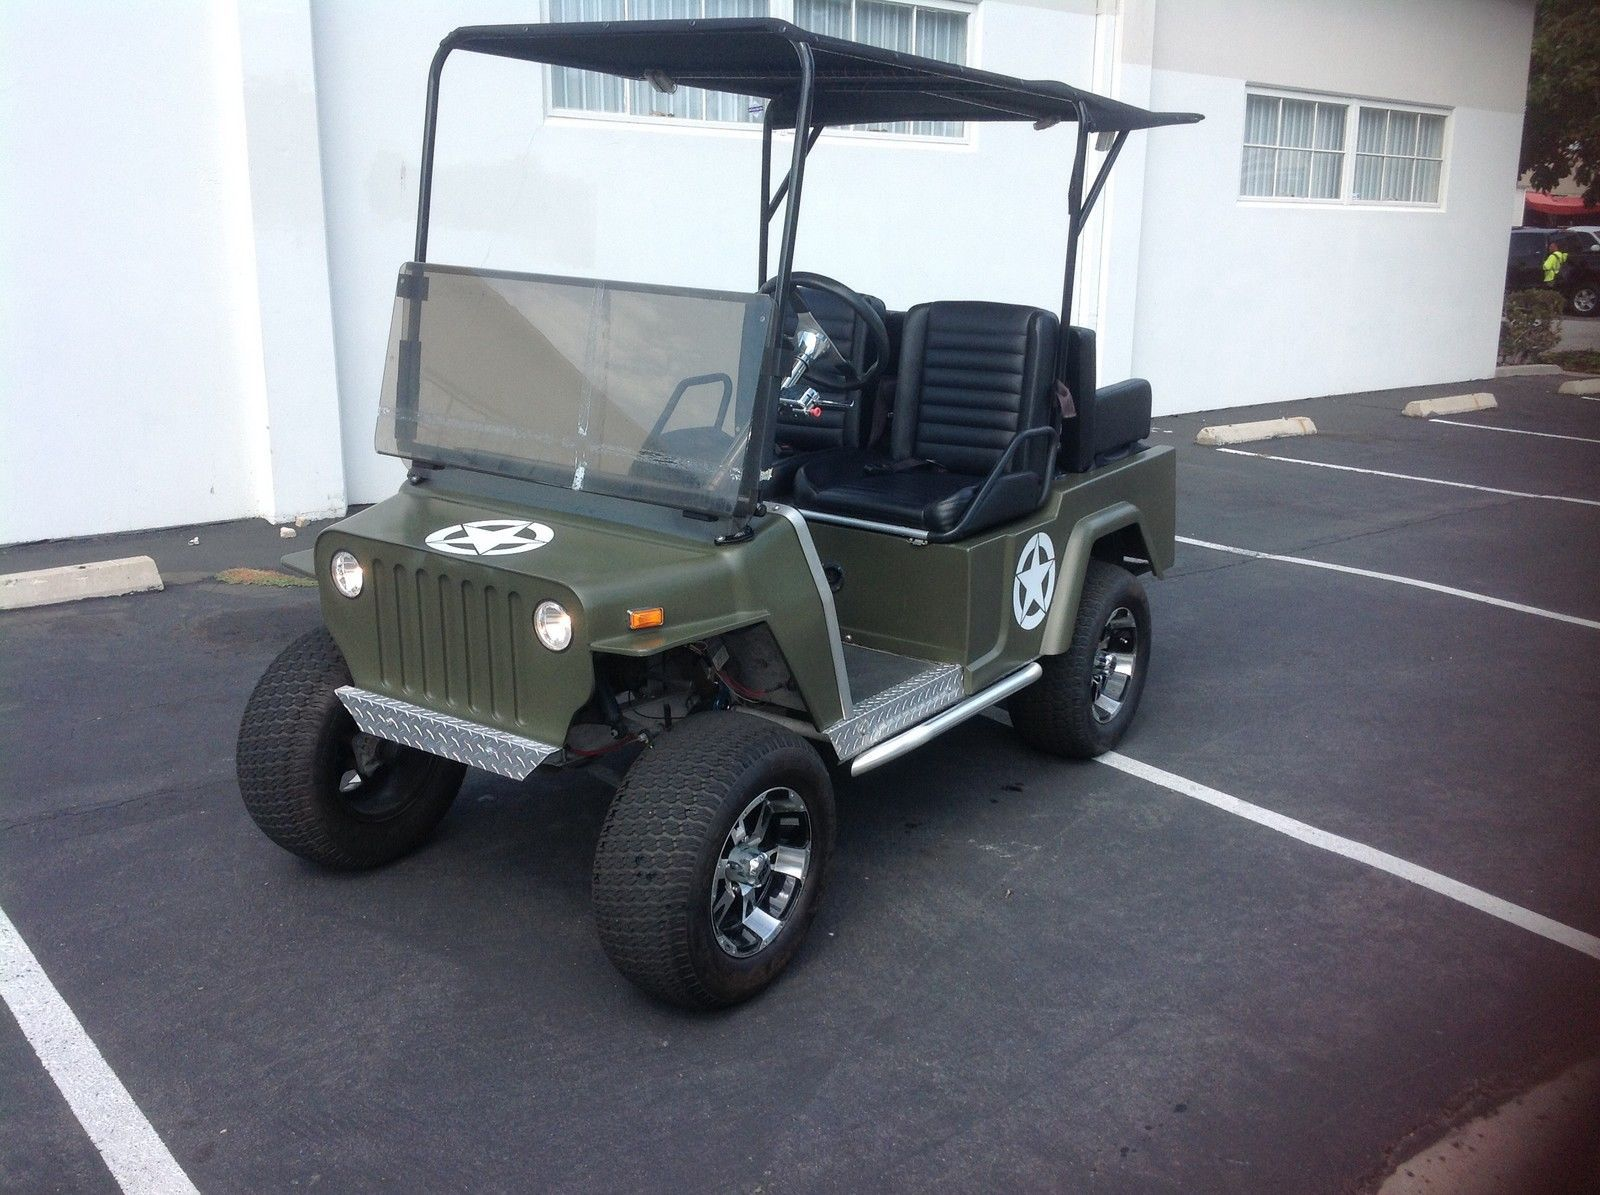 Club Car Golf Cart Willys Jeep Custom 48v 48 Volt Green Army Style 12 Alloy Rim For Sale Club Car Golf Cart Golf Carts Golf